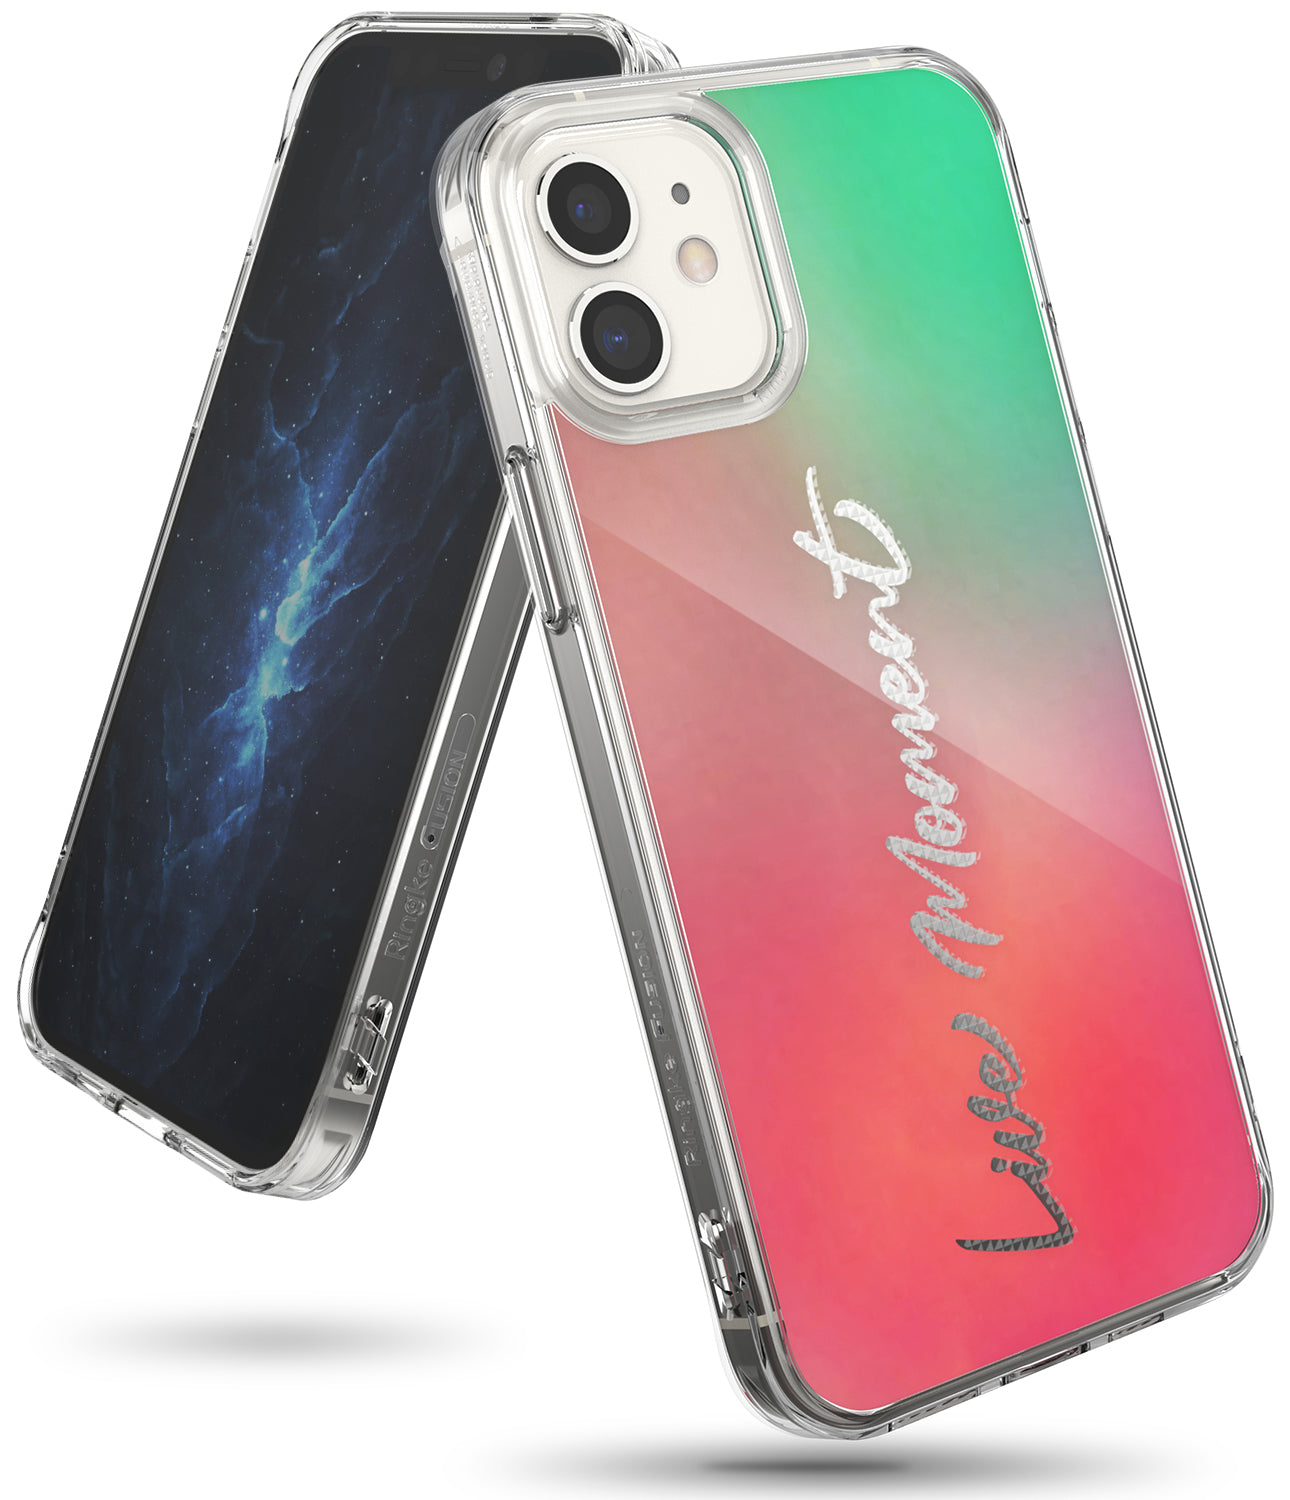 iphone 12 case, iphone 12 pro case - ringke fusion design - live moment